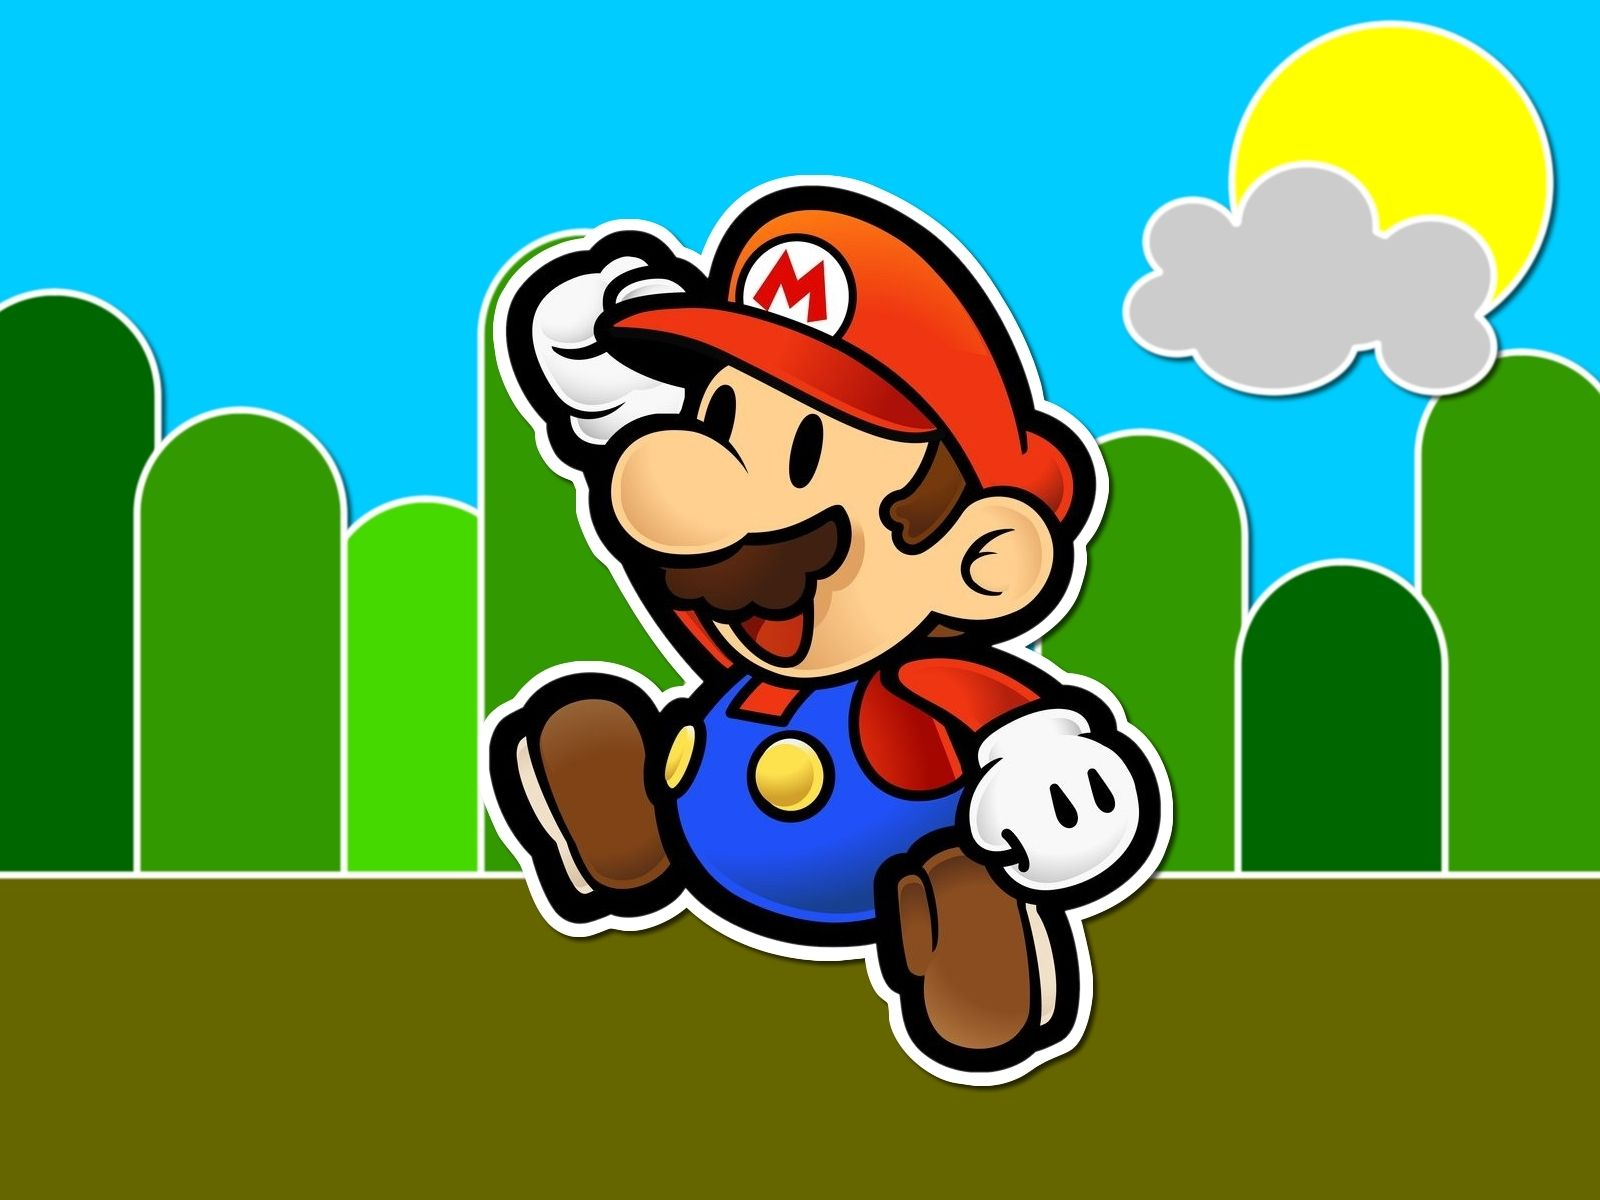 Paper Mario Wallpaper Super Mario Bros 5431535 1600 1200 Jpg 1600